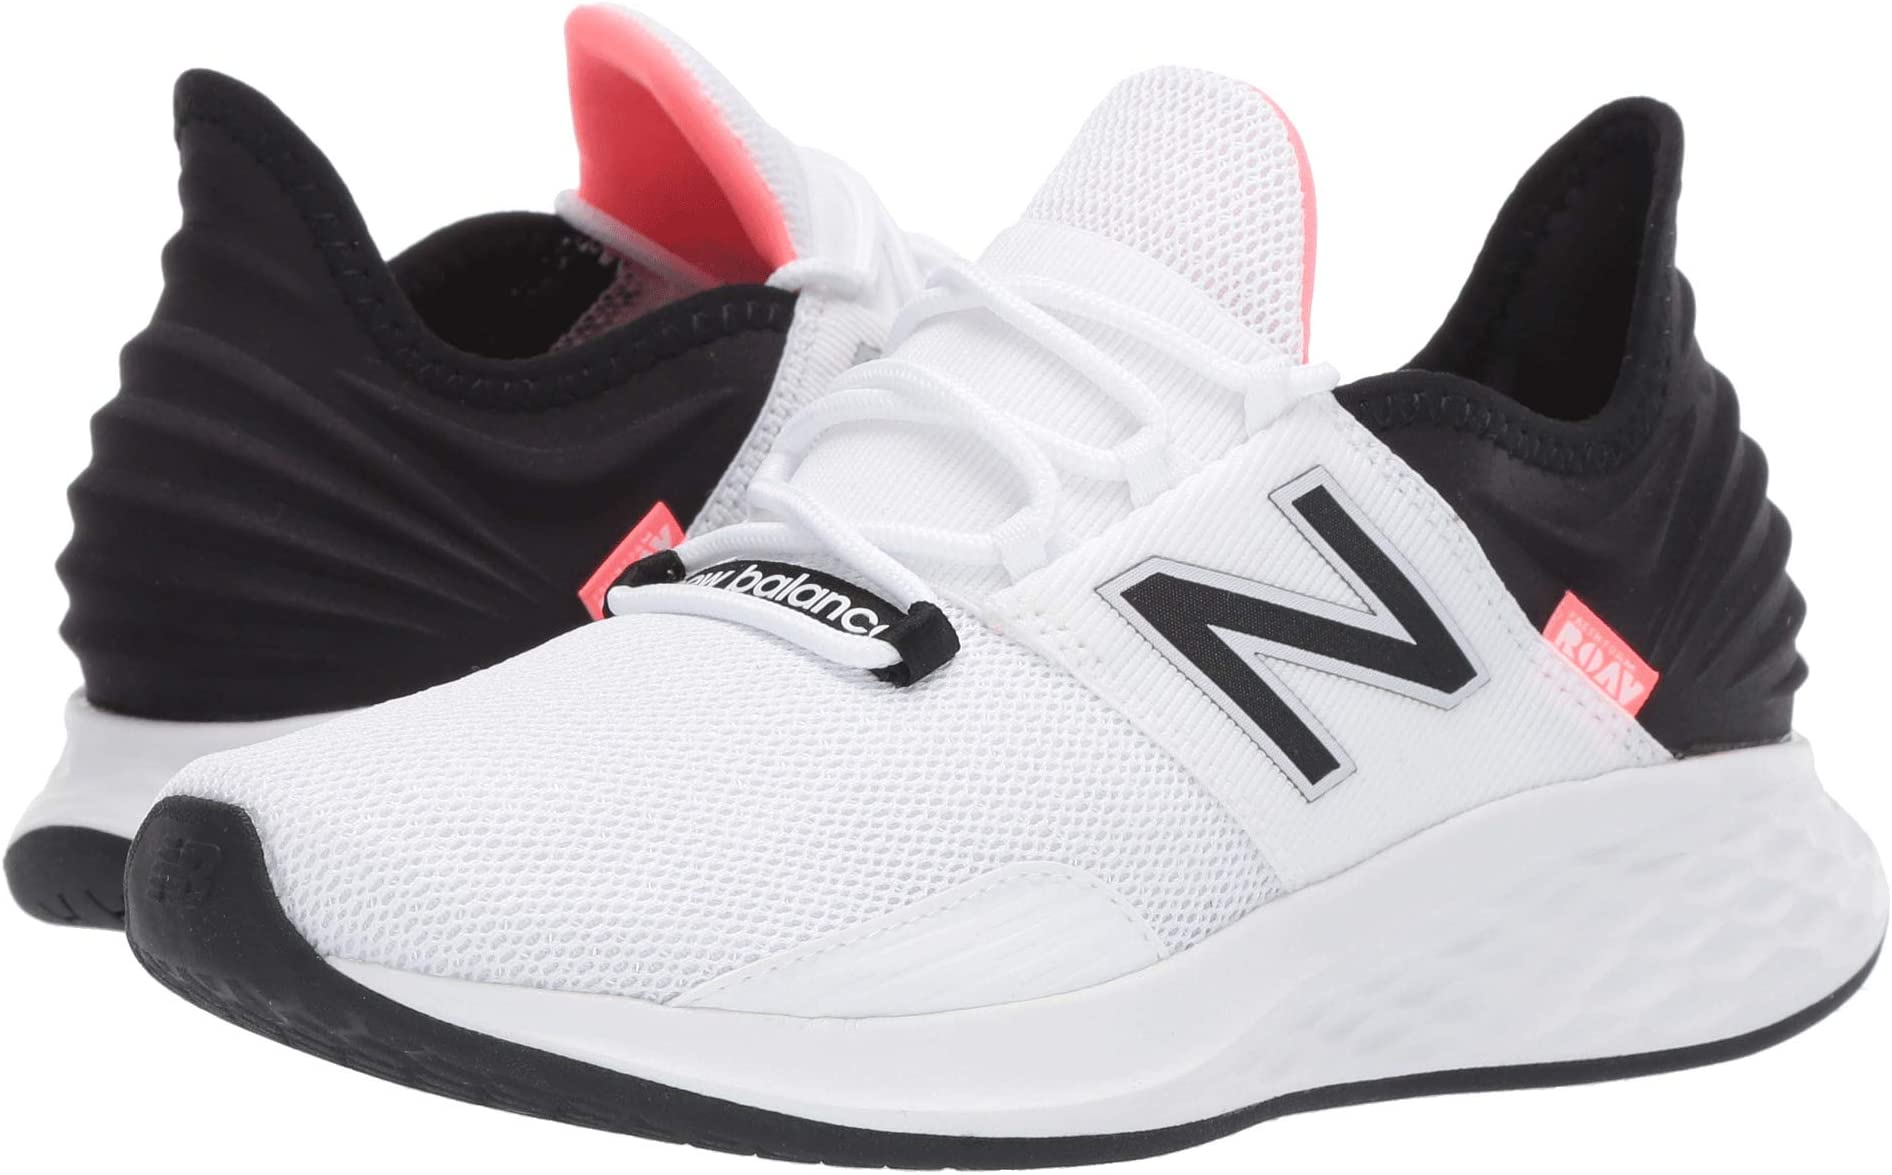 timeless design 702e1 688b3 New Balance Shoes, Clothing, Accessories and More | Zappos.com